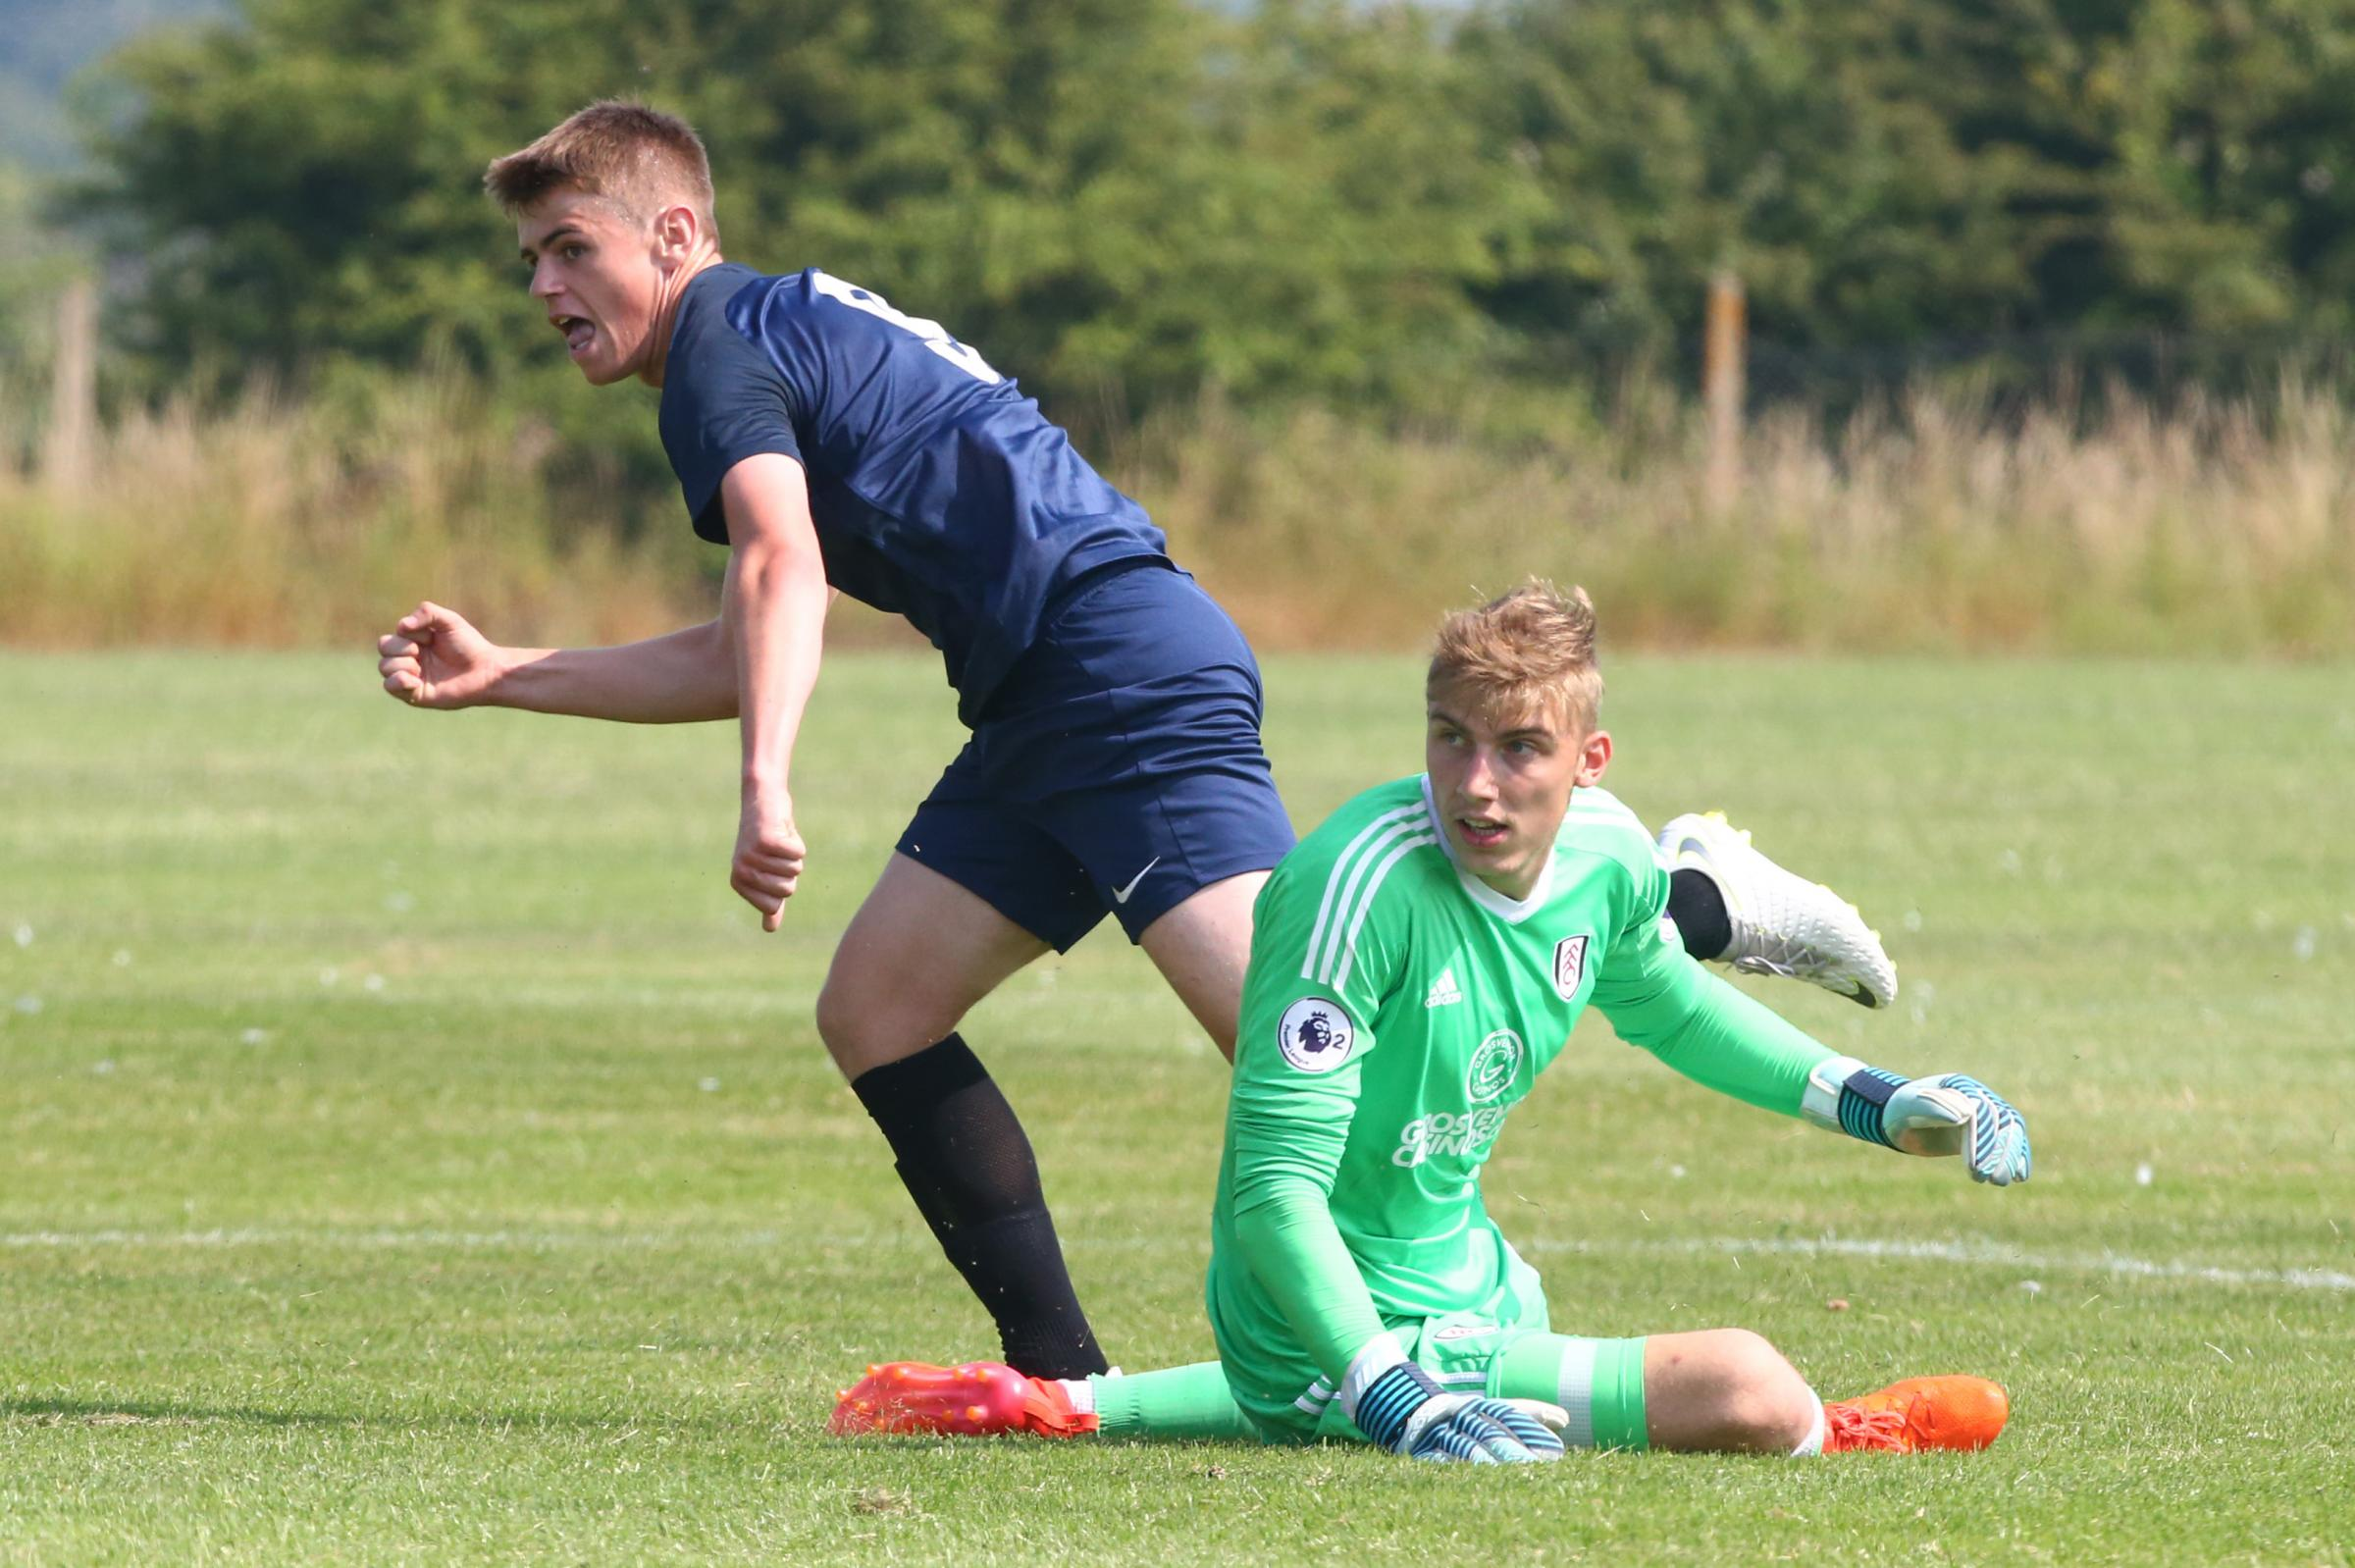 Firing home - Southend United youngster Charlie Kelman